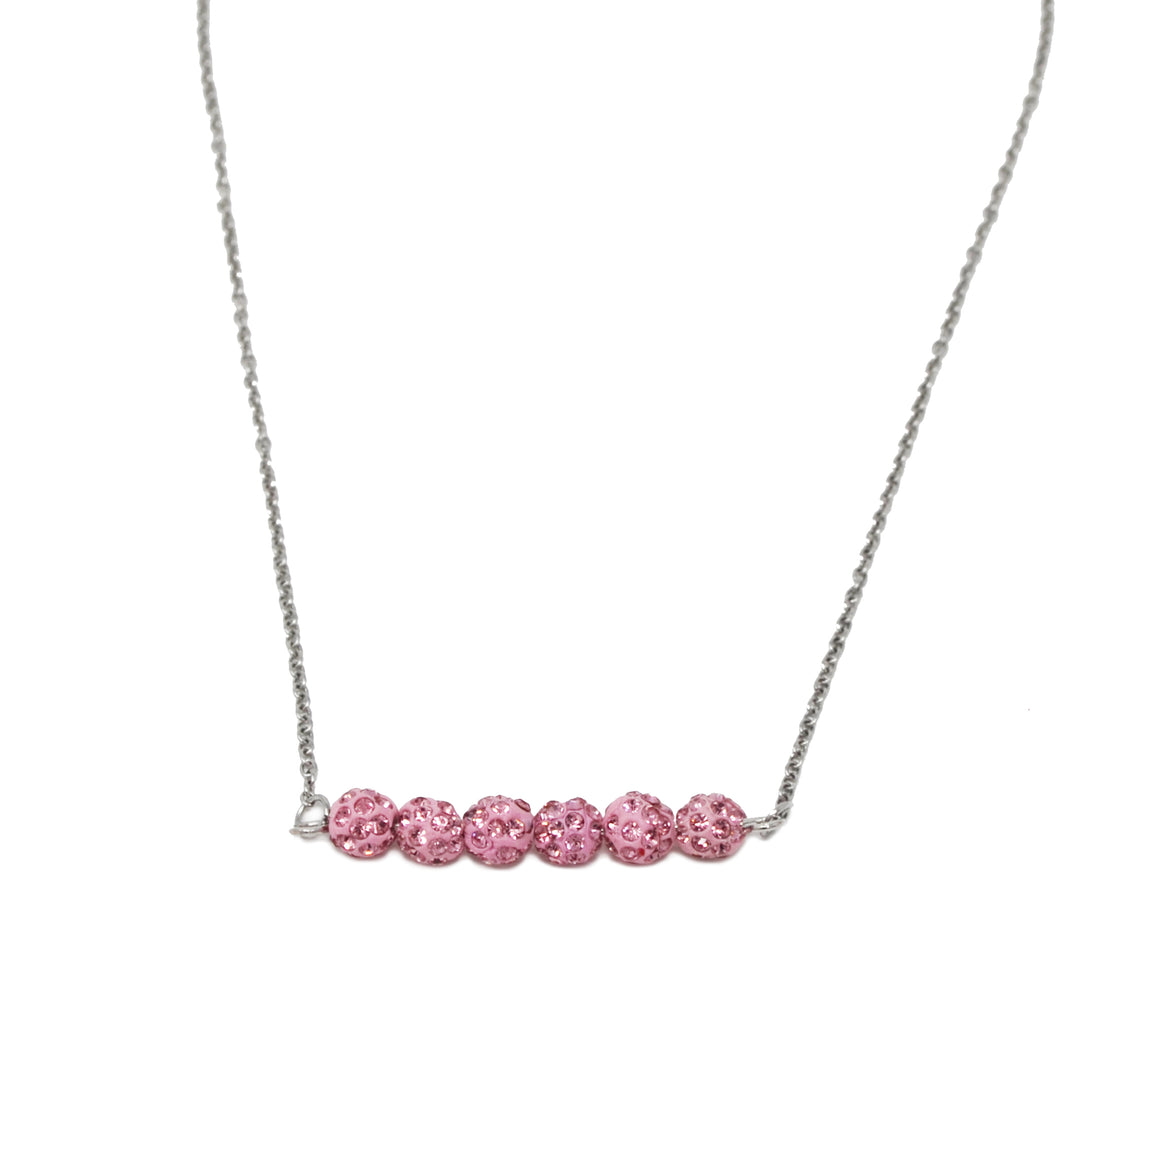 Crystal Bead Necklace- Pink - ZOMI GEMS